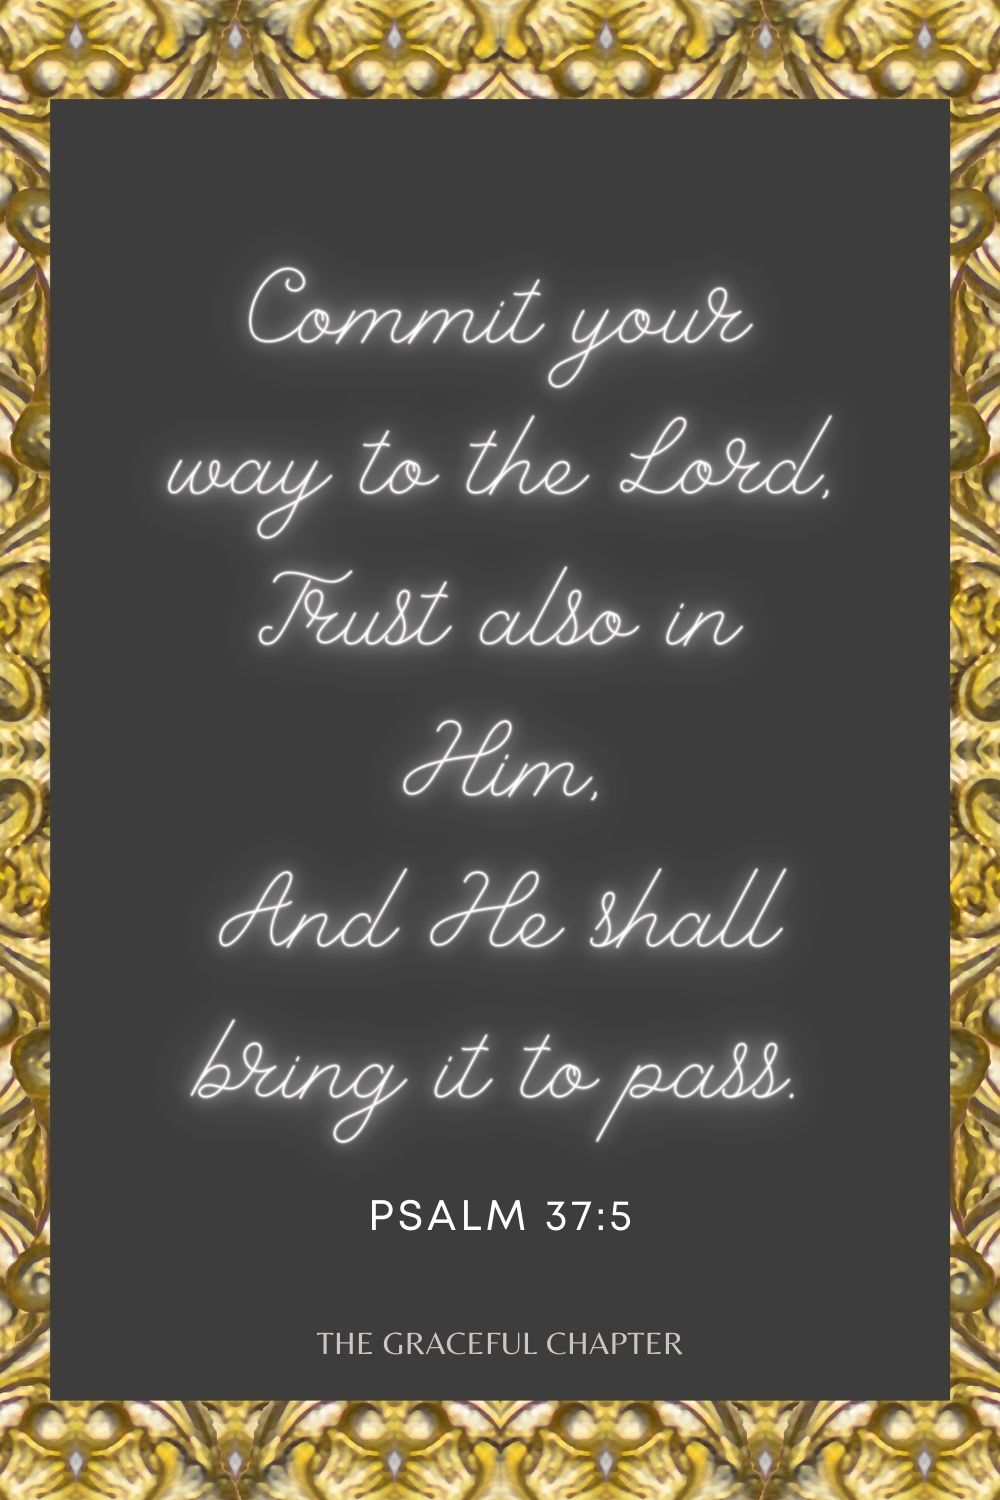 Commit your way to the Lord, Trust also in Him, And He shall bring it to pass. Psalm 37:5